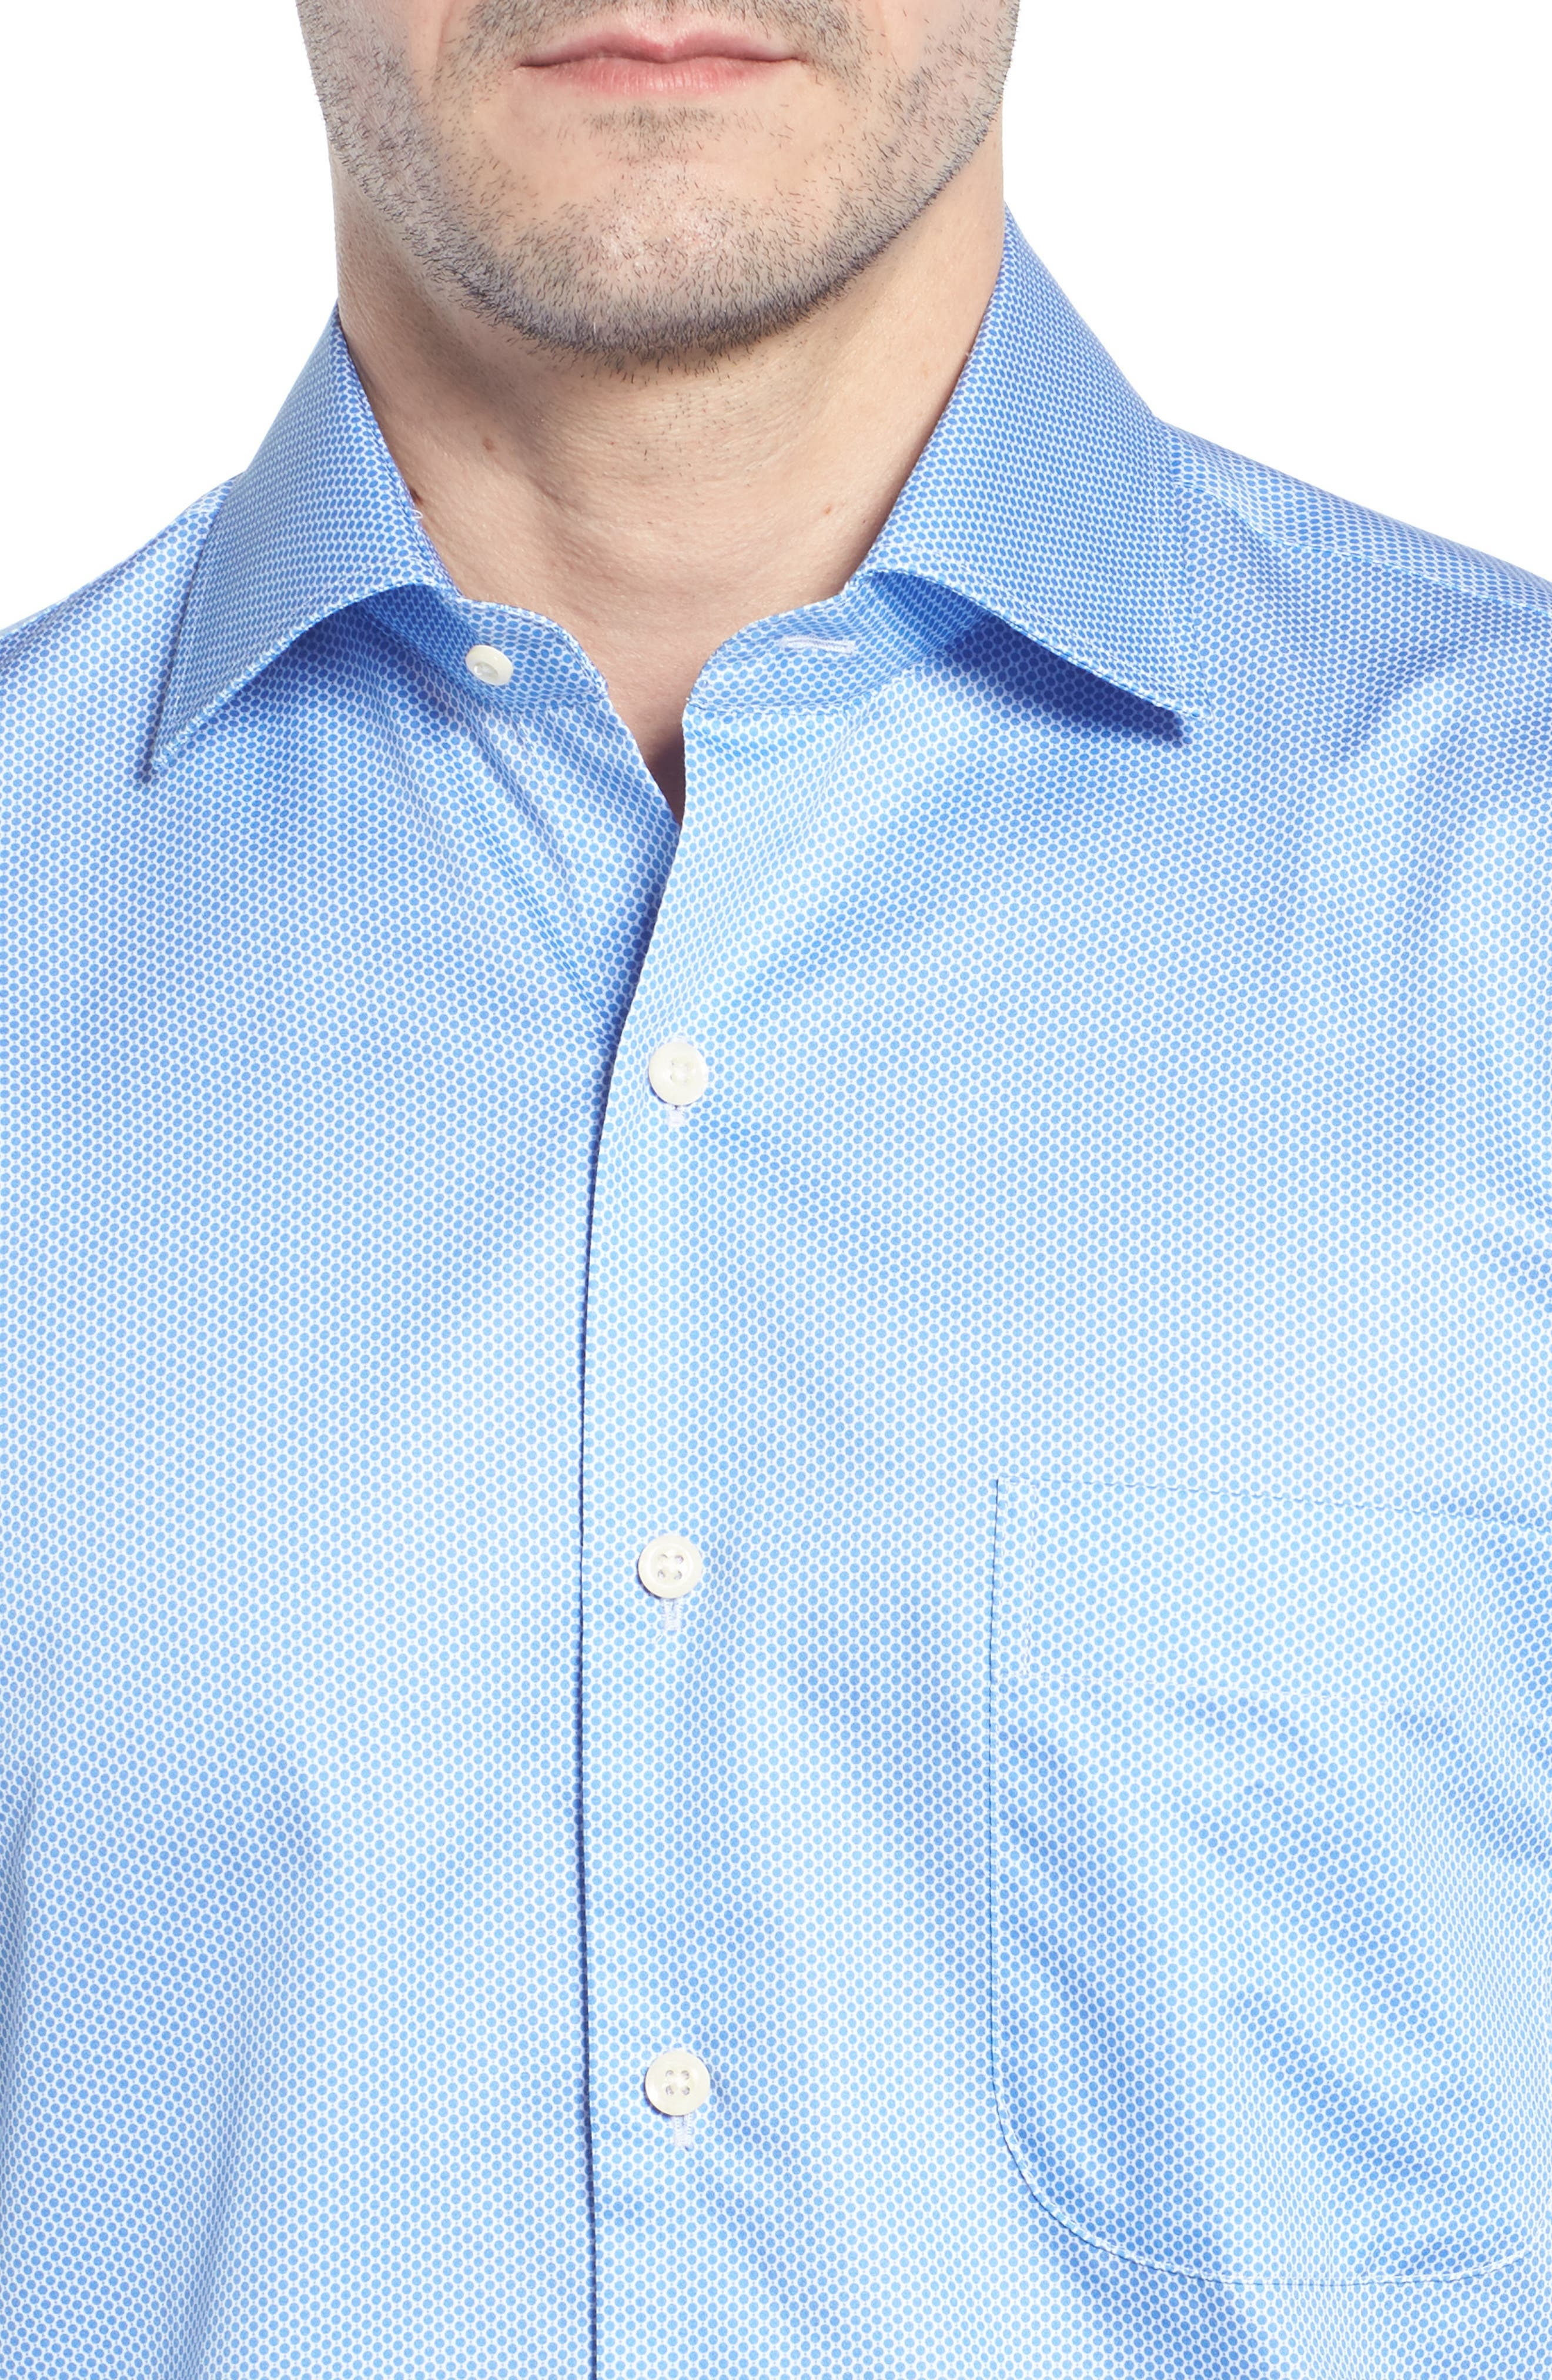 Crown Ease Connecting the Dots Sport Shirt,                             Alternate thumbnail 4, color,                             ATLAS BLUE